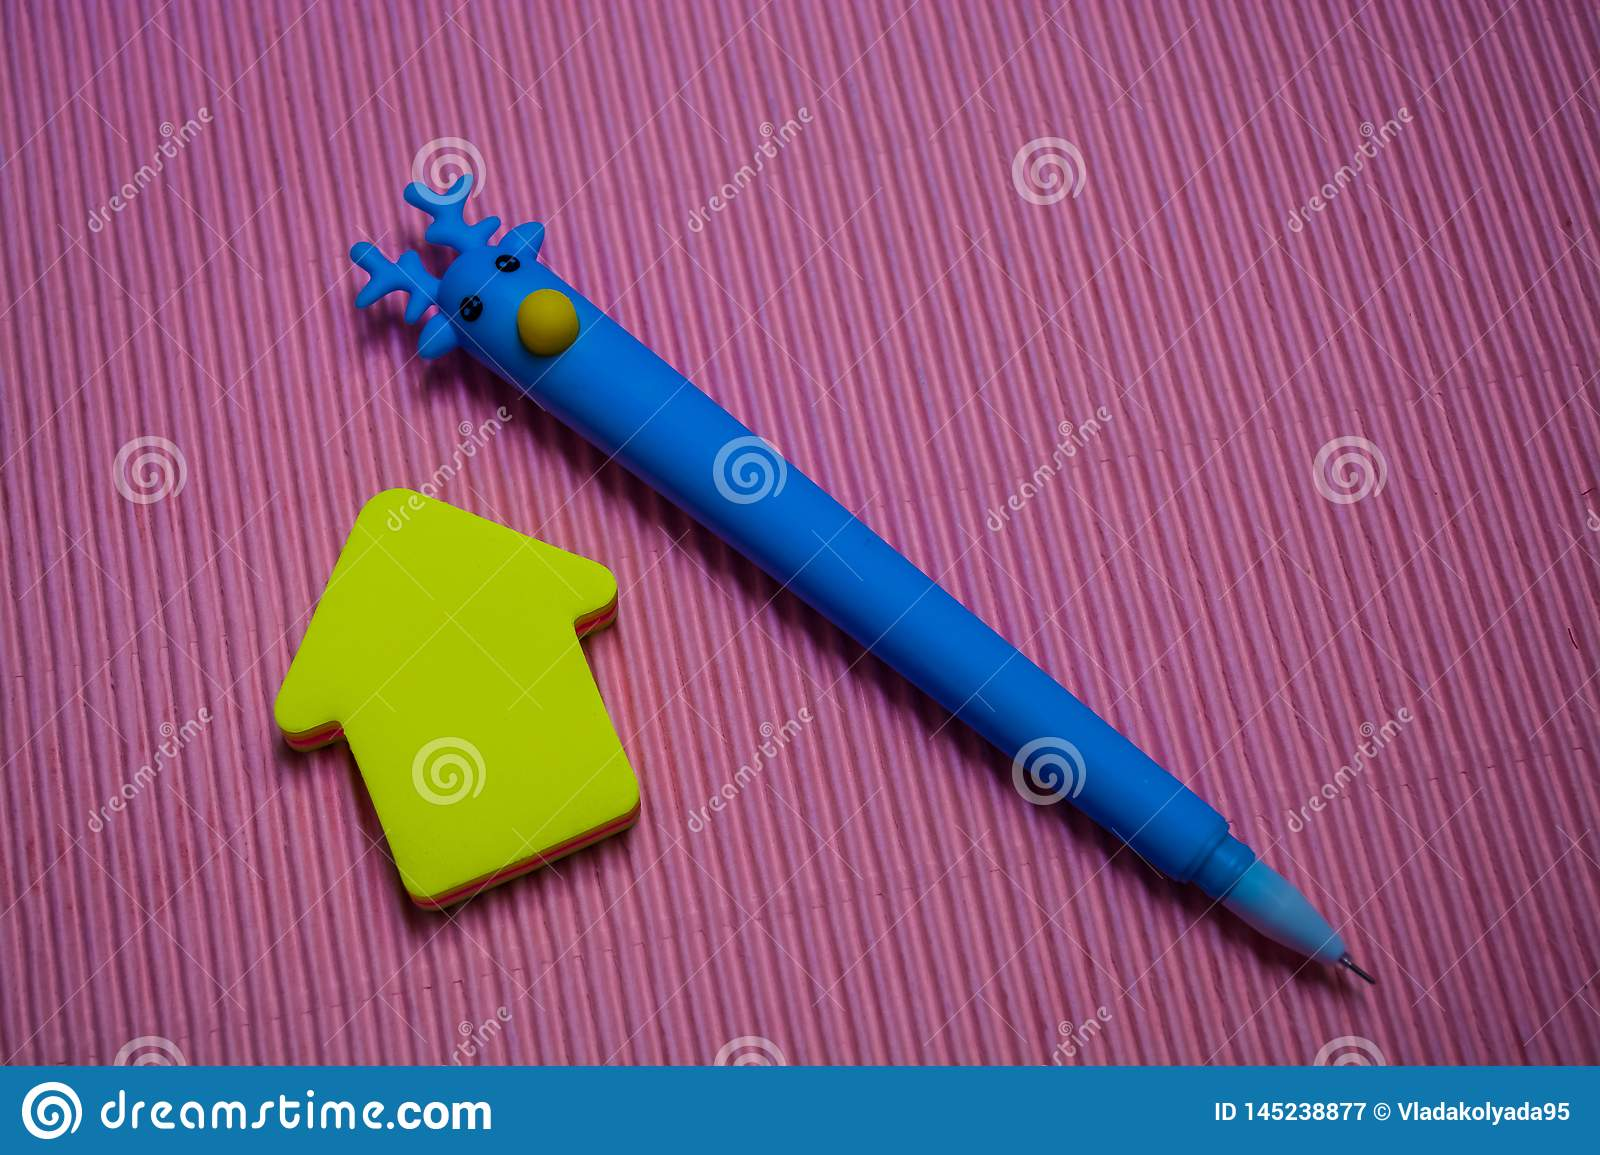 On monophonic bright pink background the unusual blue pen with the head of deer. Nearby lie stickers, note paper. Office.